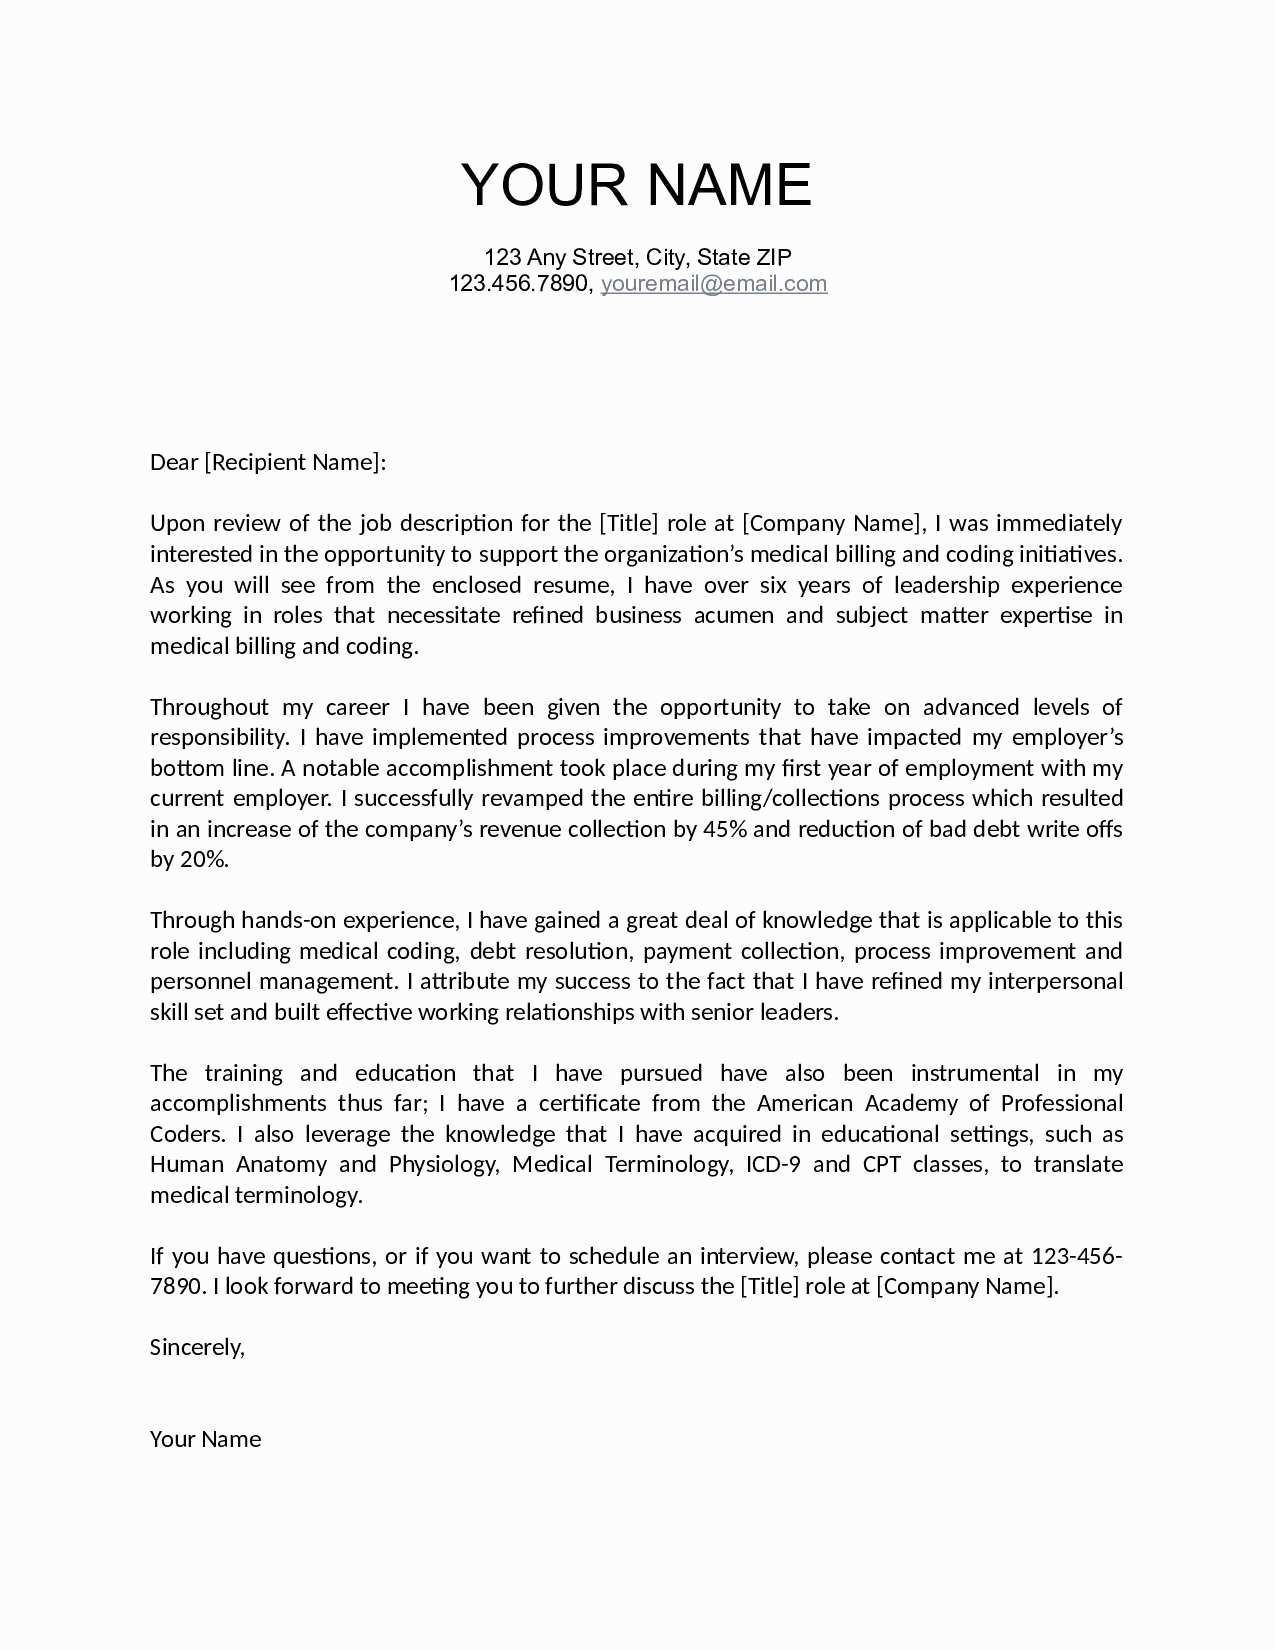 Cover Letter Template Healthcare - Best Sample Cover Letter for Job In Healthcare